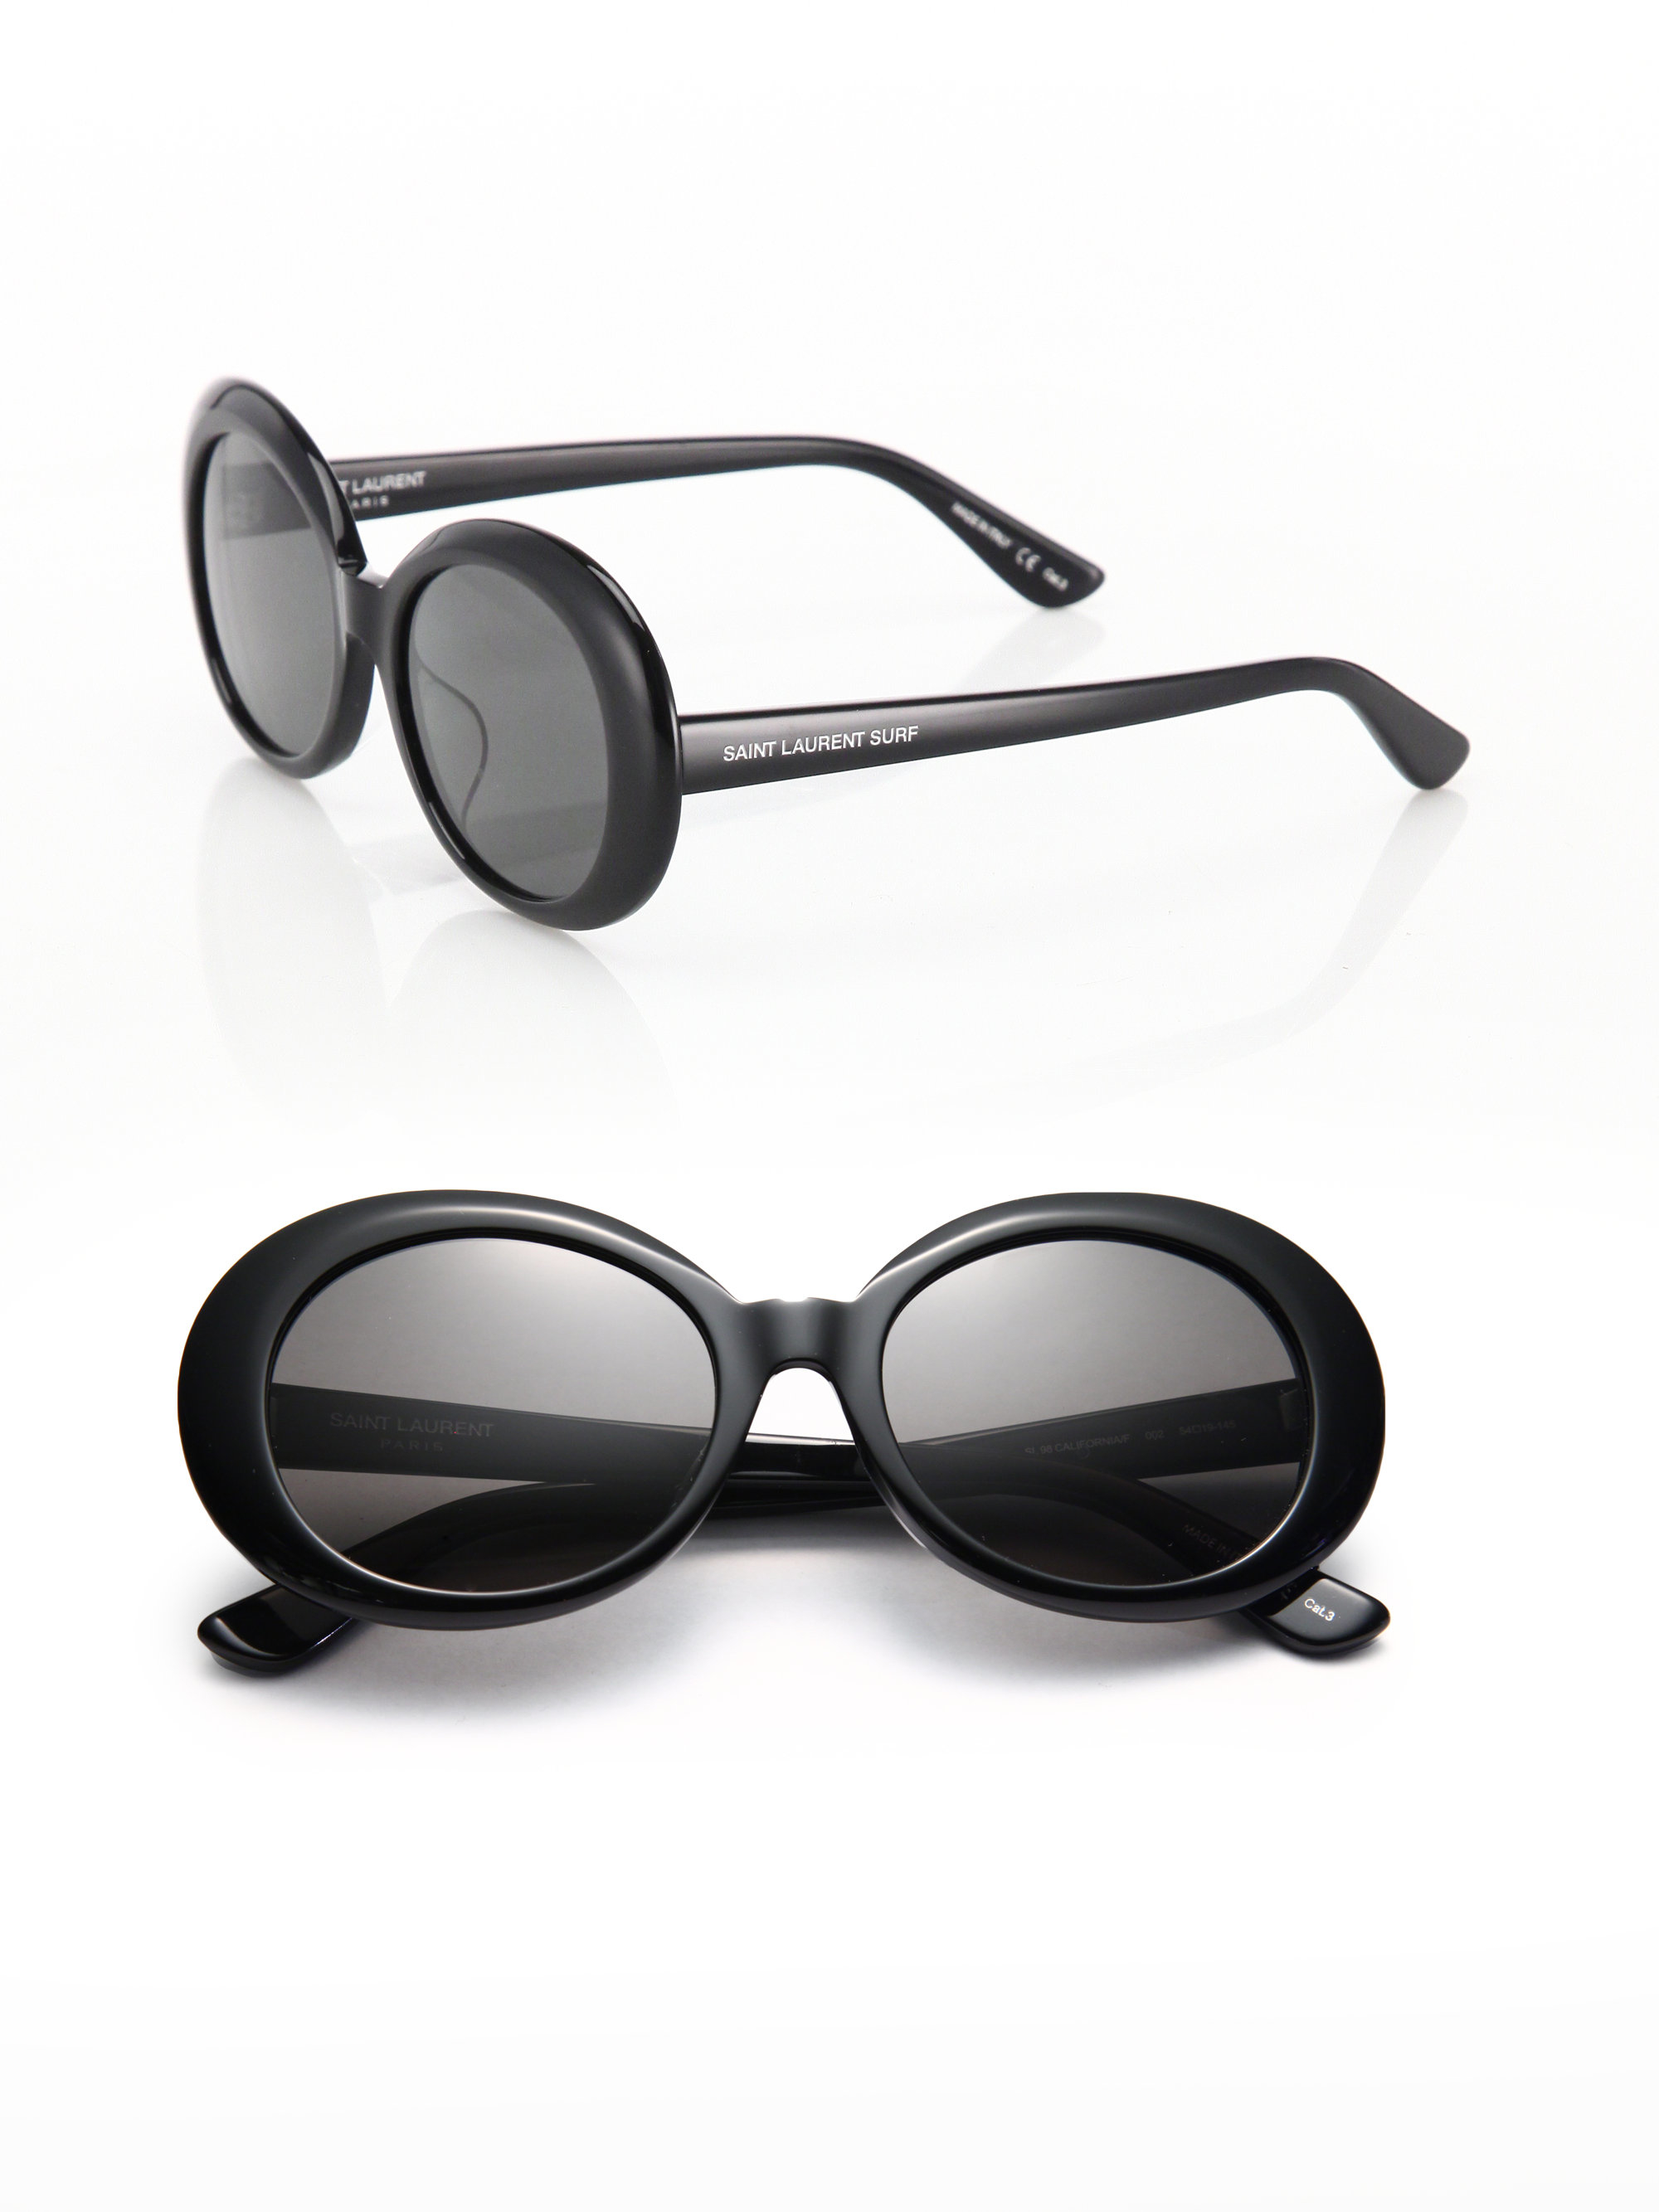 Oversized Oval Sunglasses  saint lau sl 98 california 53mm oversized oval sunglasses in